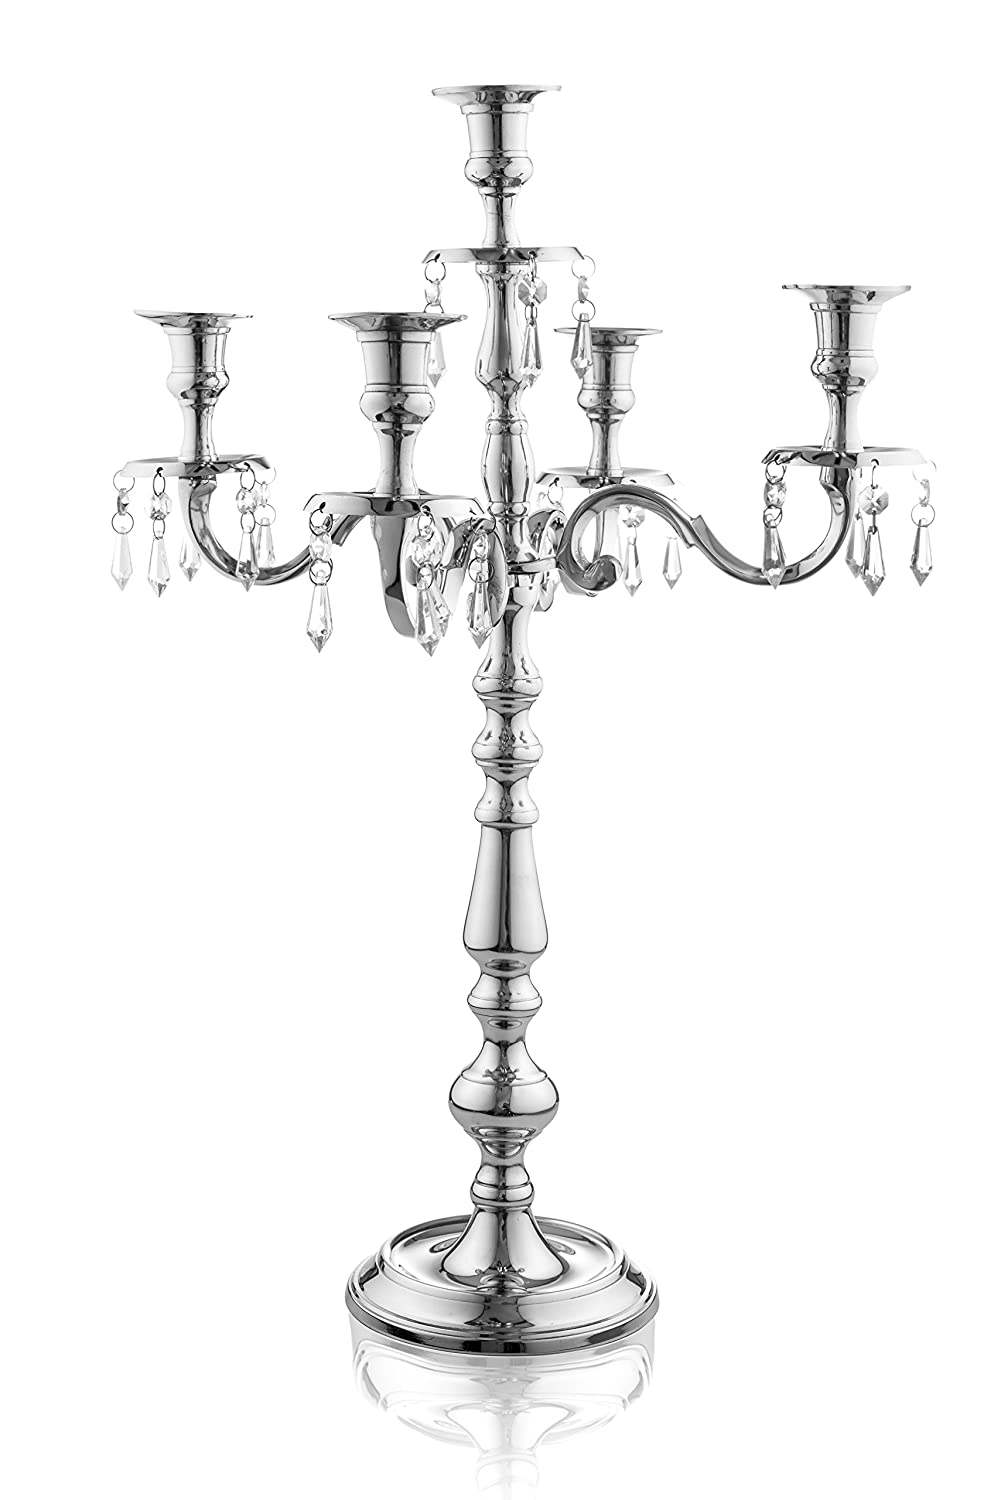 Klikel Traditional 24 Inch Silver 5 Candle Candelabra With Crystal Drops - Classic Elegant Design - Wedding, Dinner Party And Formal Event Centerpiece - Nickel Plated Aluminum, Dangling Acrylic Crysta Klikel Inc